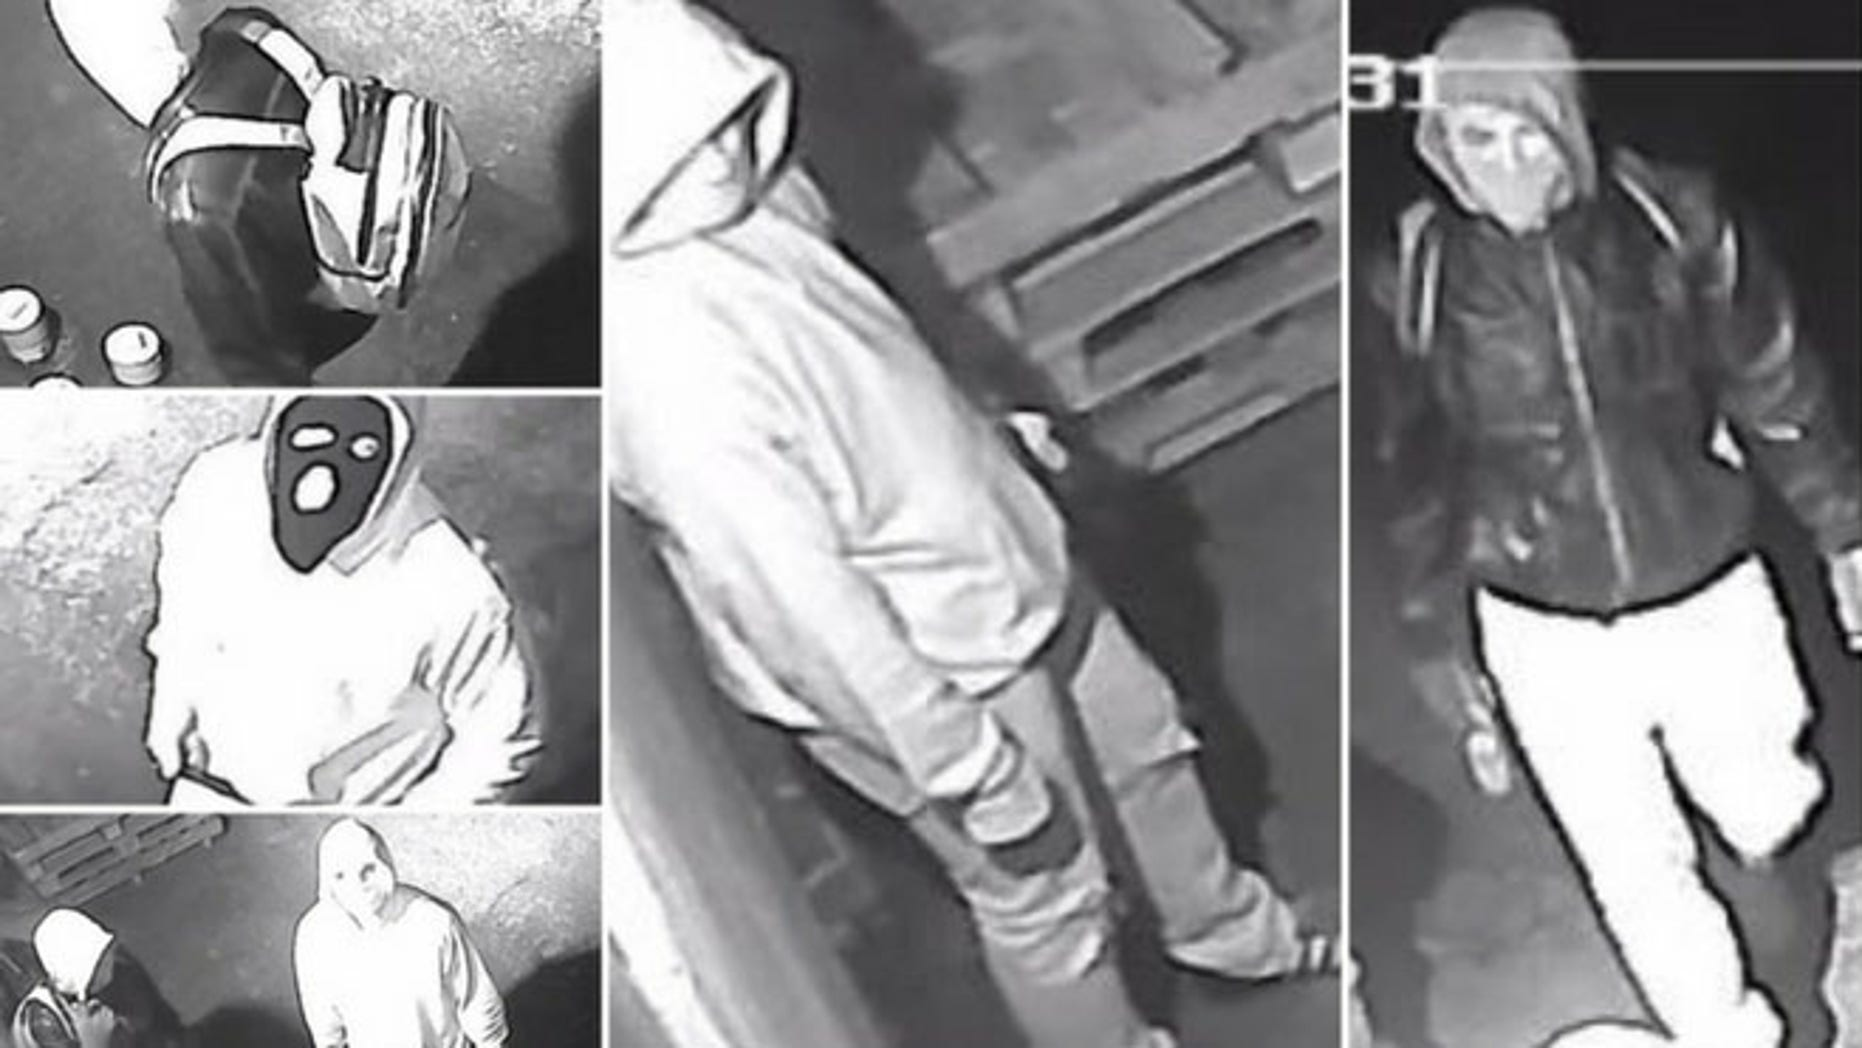 Surveillance footage caught three individuals trying to burglarize a Whitehall, Pa., gun shop on Feb. 23.